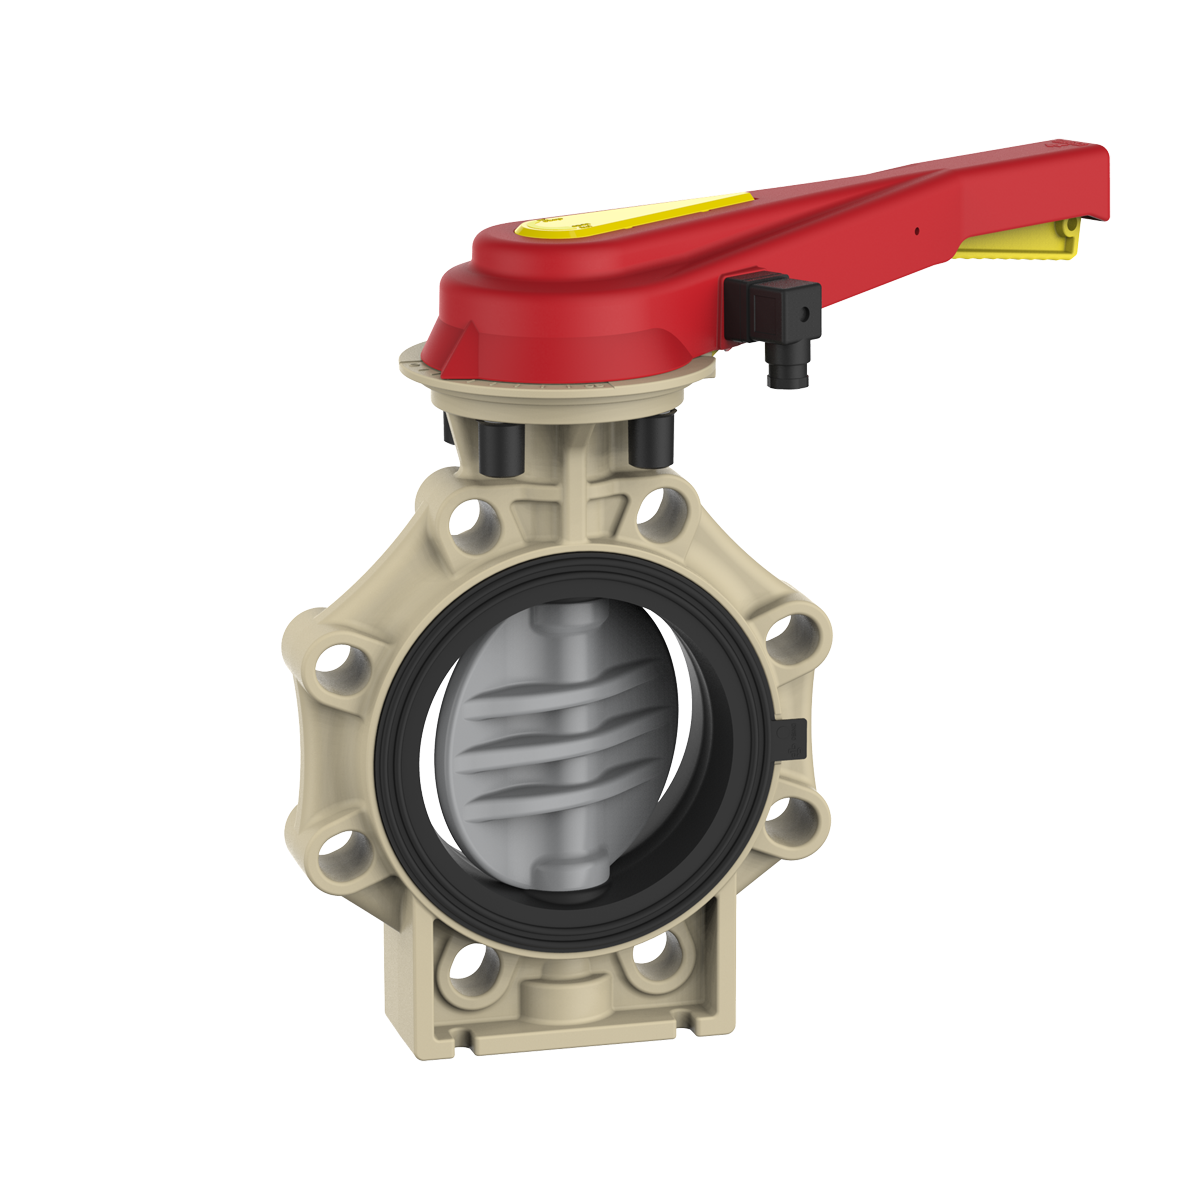 Lever Butterfly Valve : Praher butterfly valve k cpvc with hand lever and